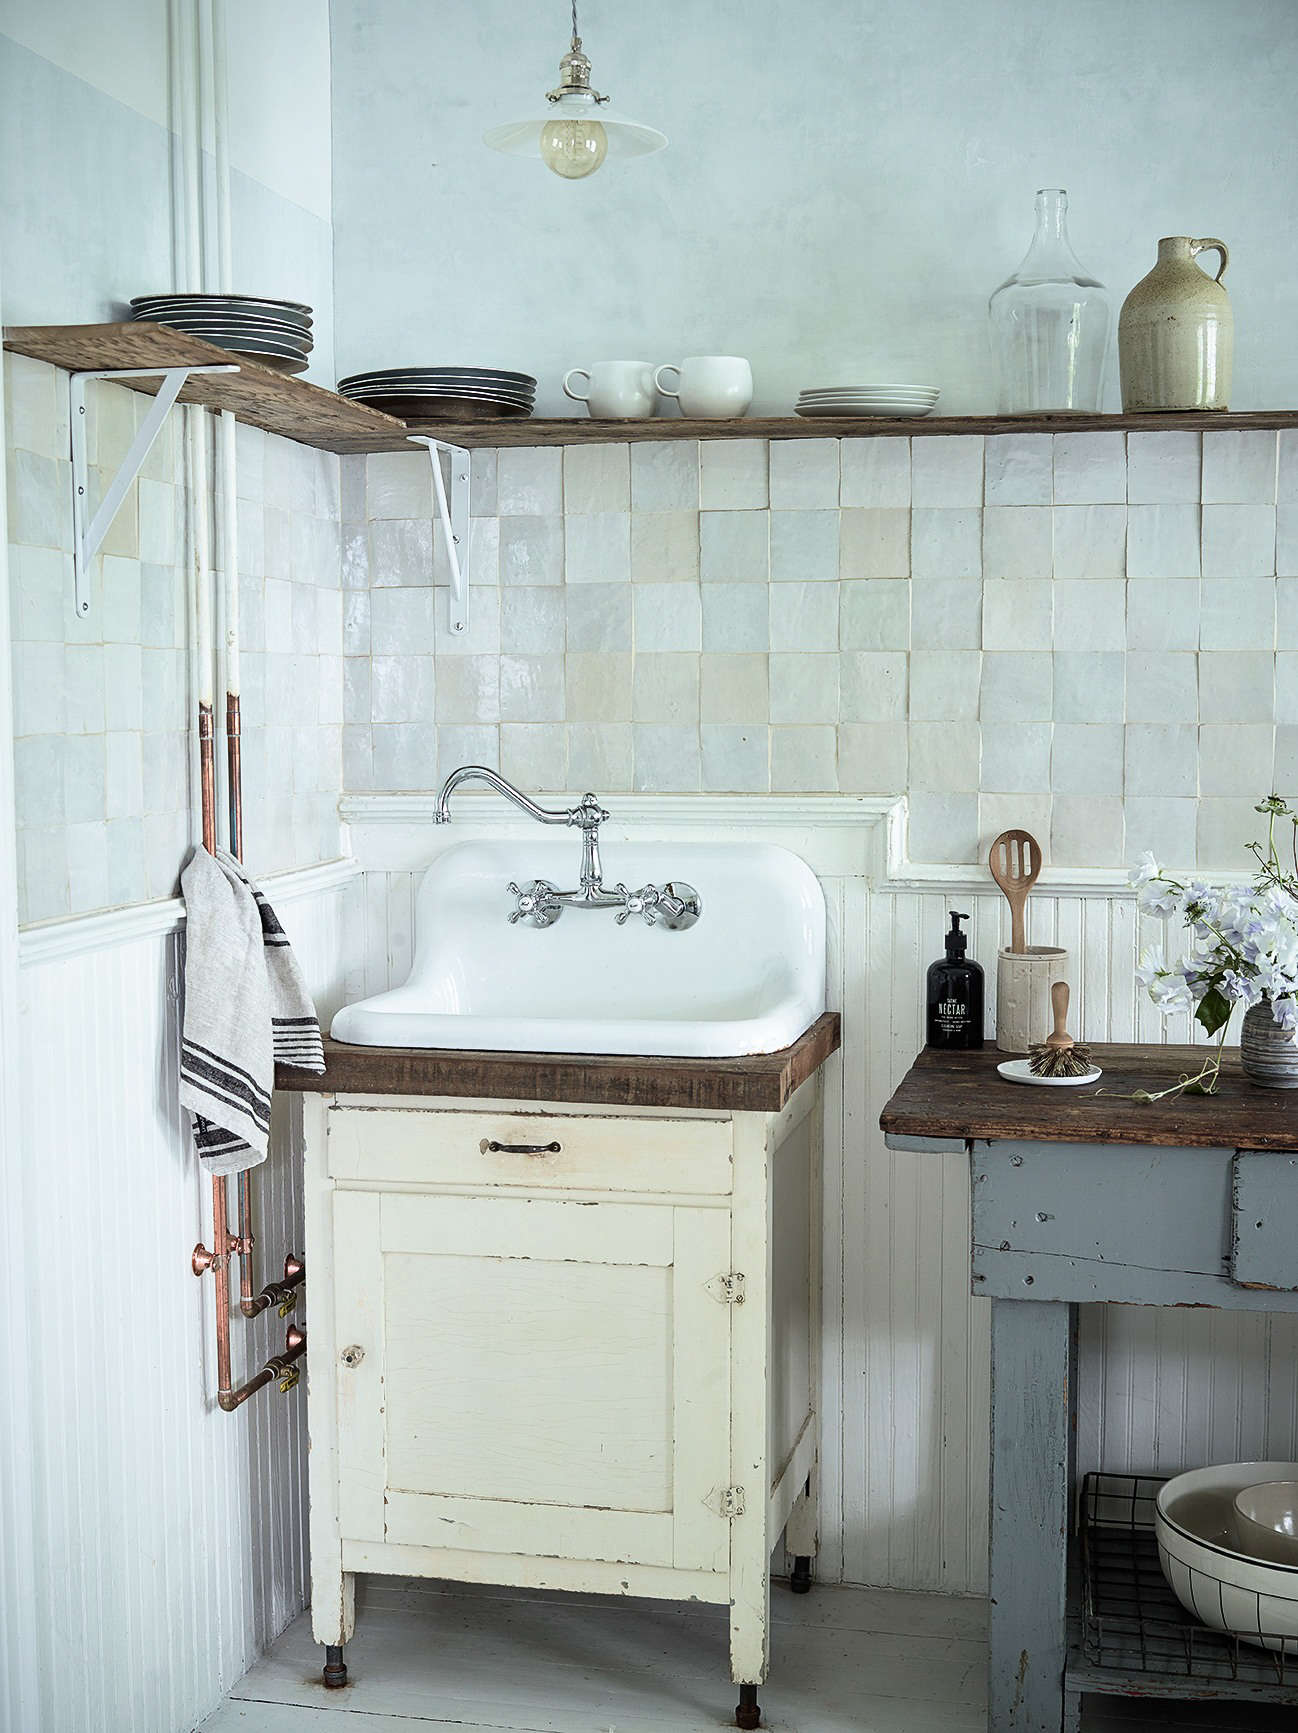 How to Choose Tile: The Only 7 Types of Tile You Need to Know